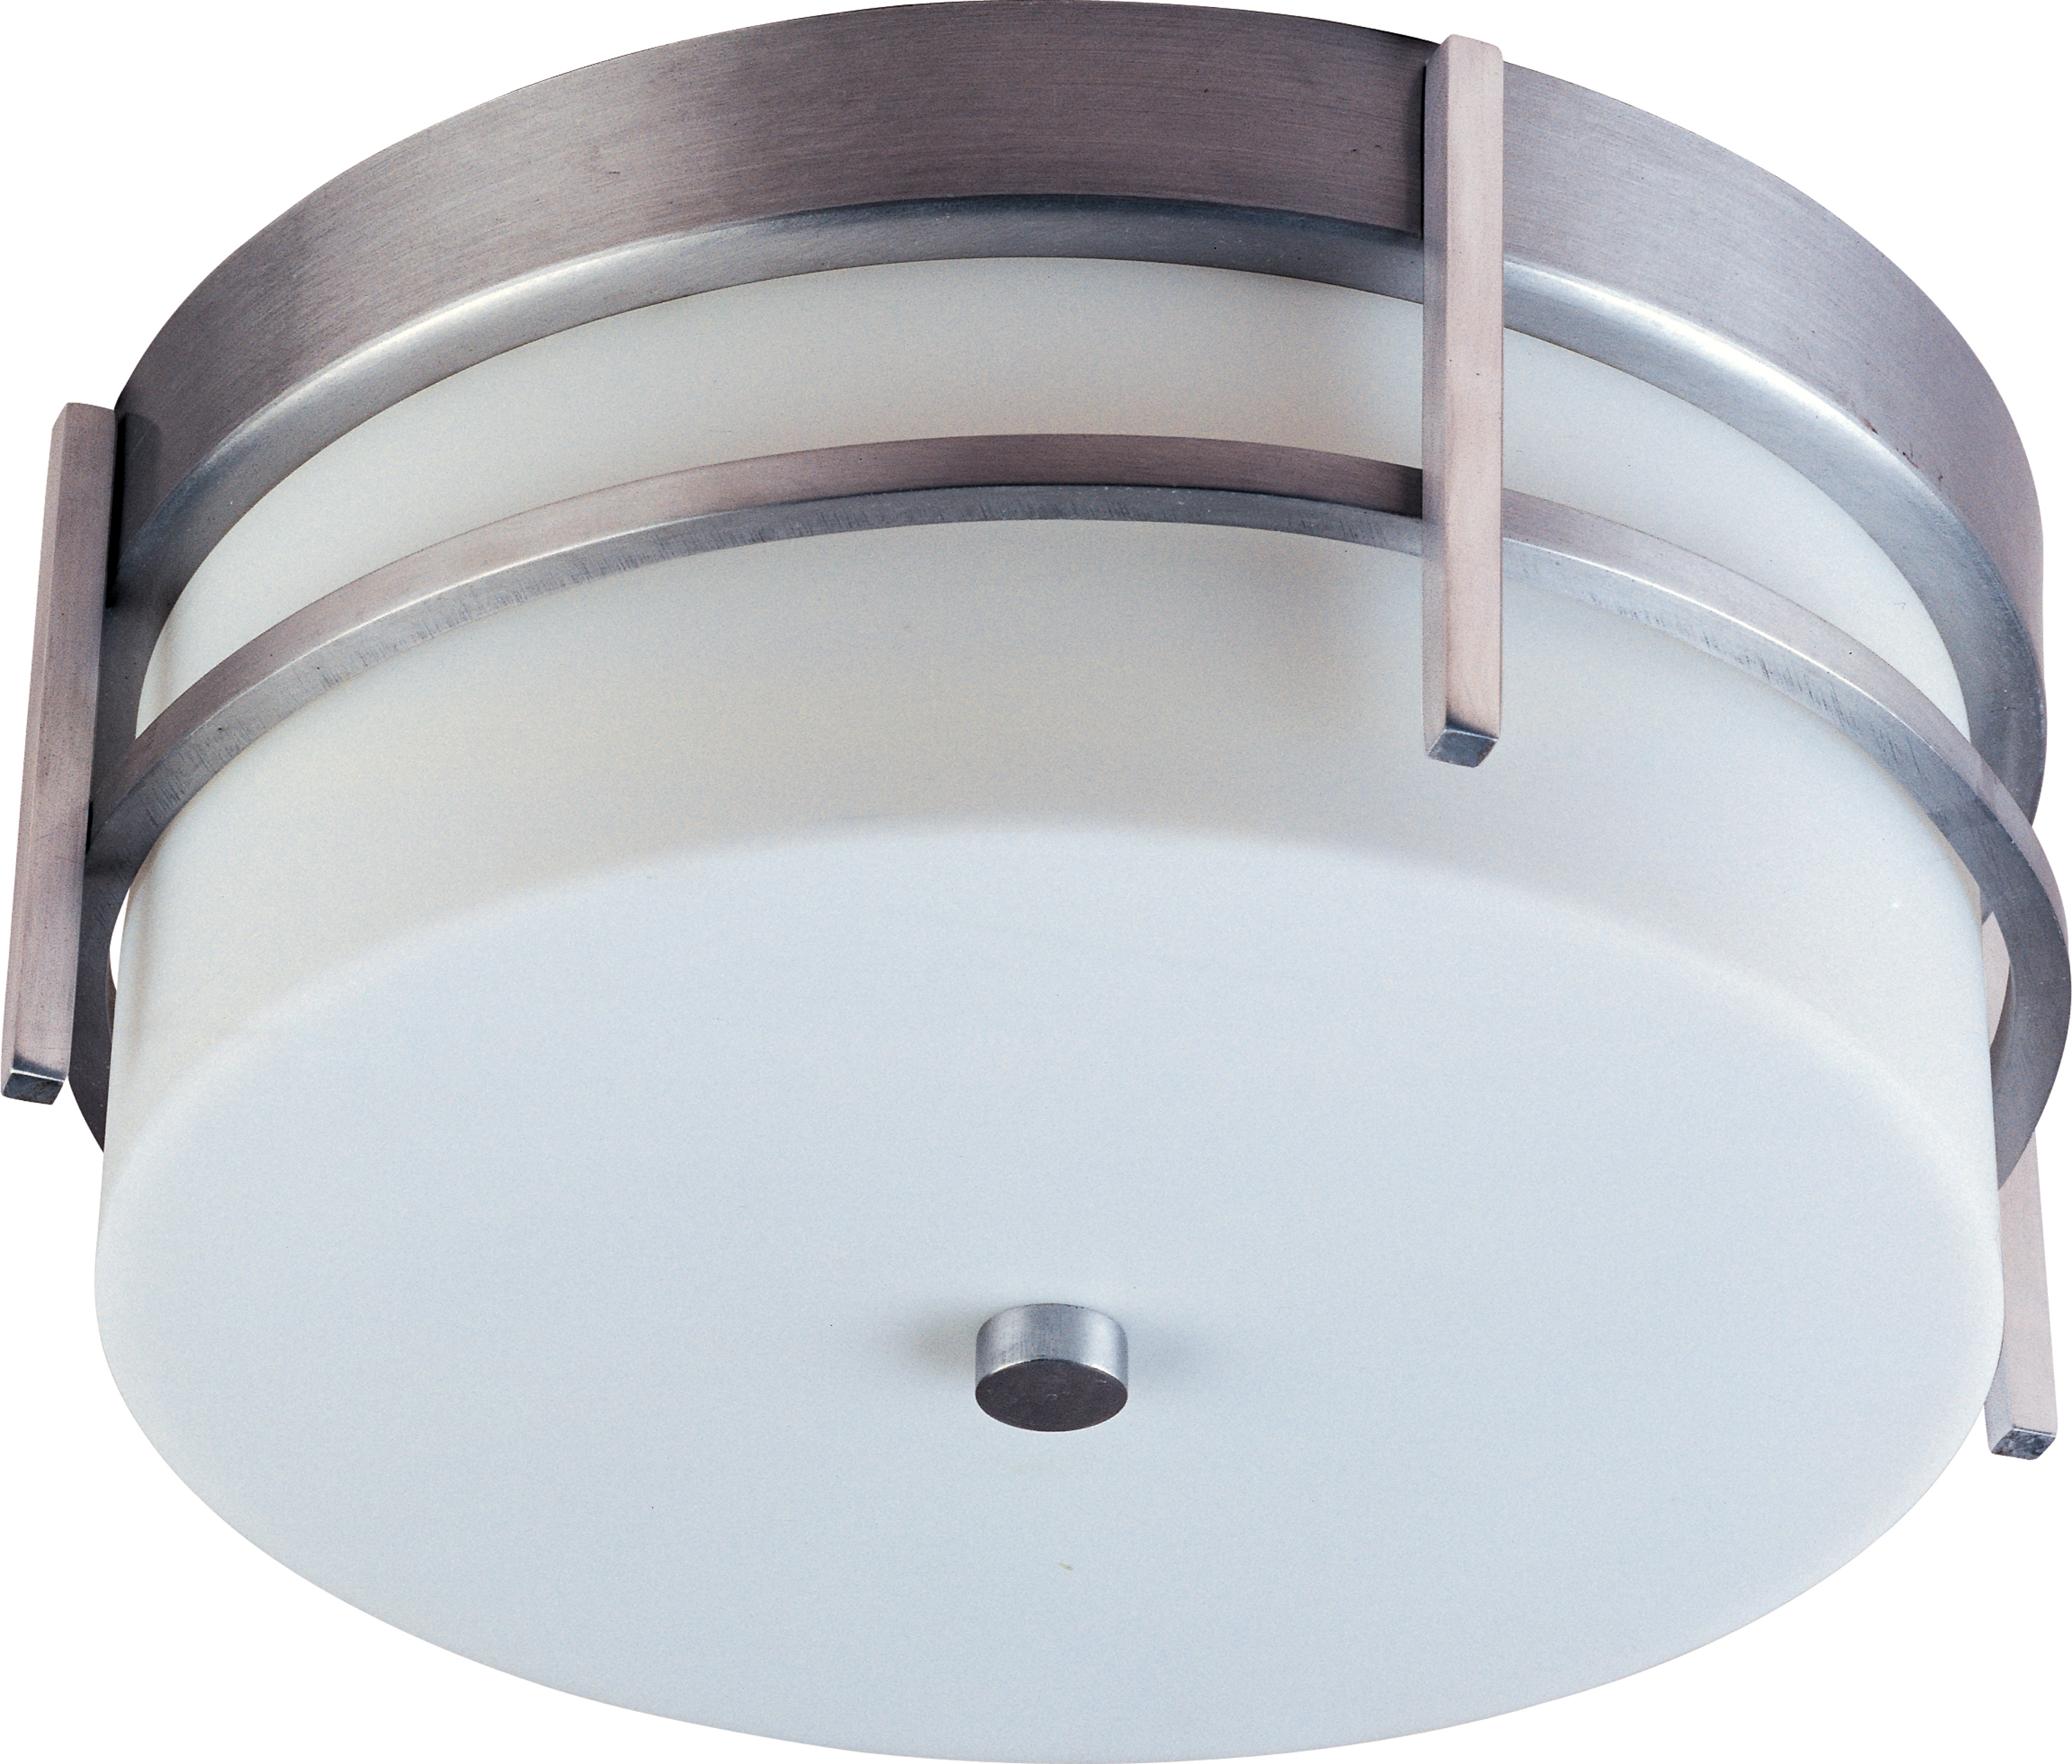 Tremendous Luna Led E26 Outdoor Ceiling Light Fixture By Maxim Lighting 65217Wtbm Download Free Architecture Designs Intelgarnamadebymaigaardcom